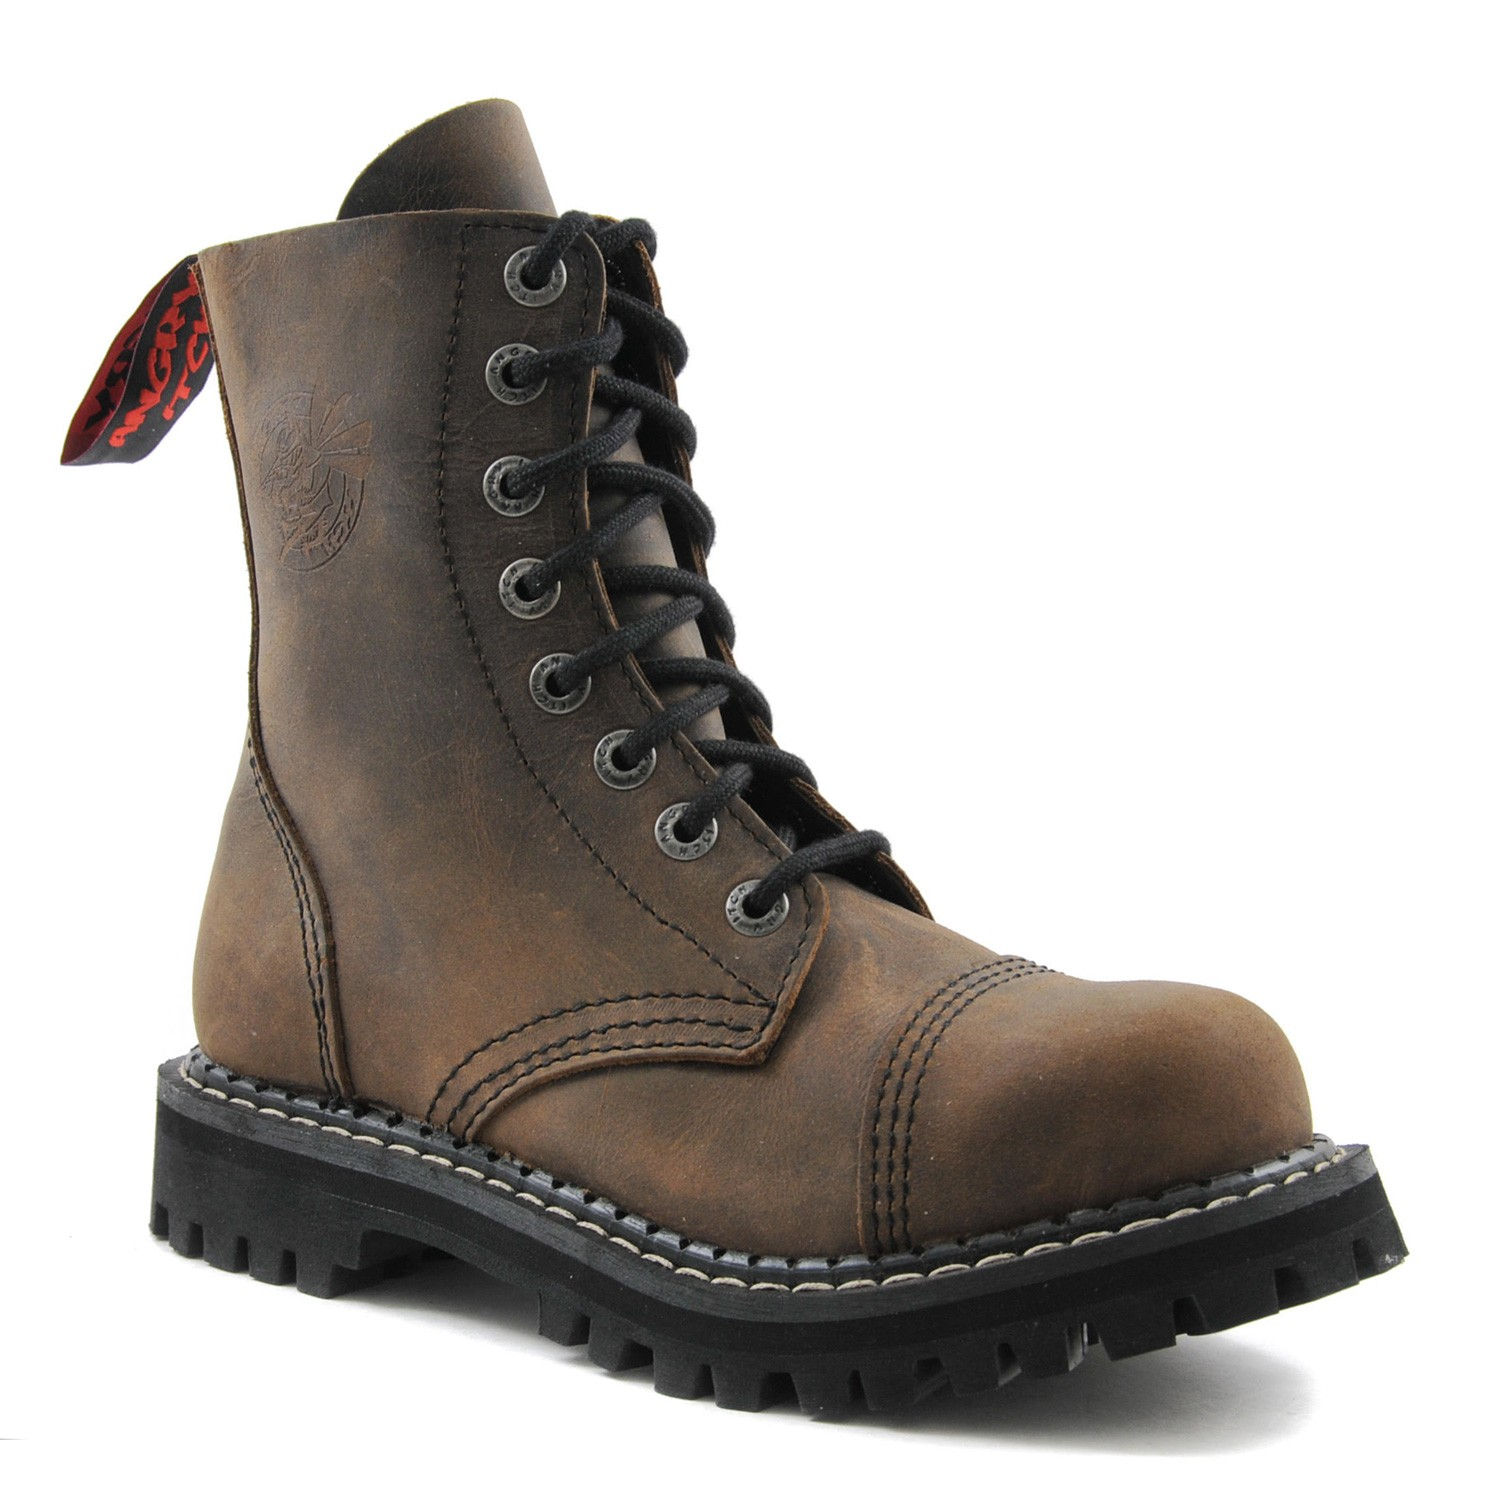 Angry Itch - 8-Loch Gothic Punk Army Ranger Armee Vintage Braun Leder Stiefel mit Stahlkappe 36-48 - Made in EU!